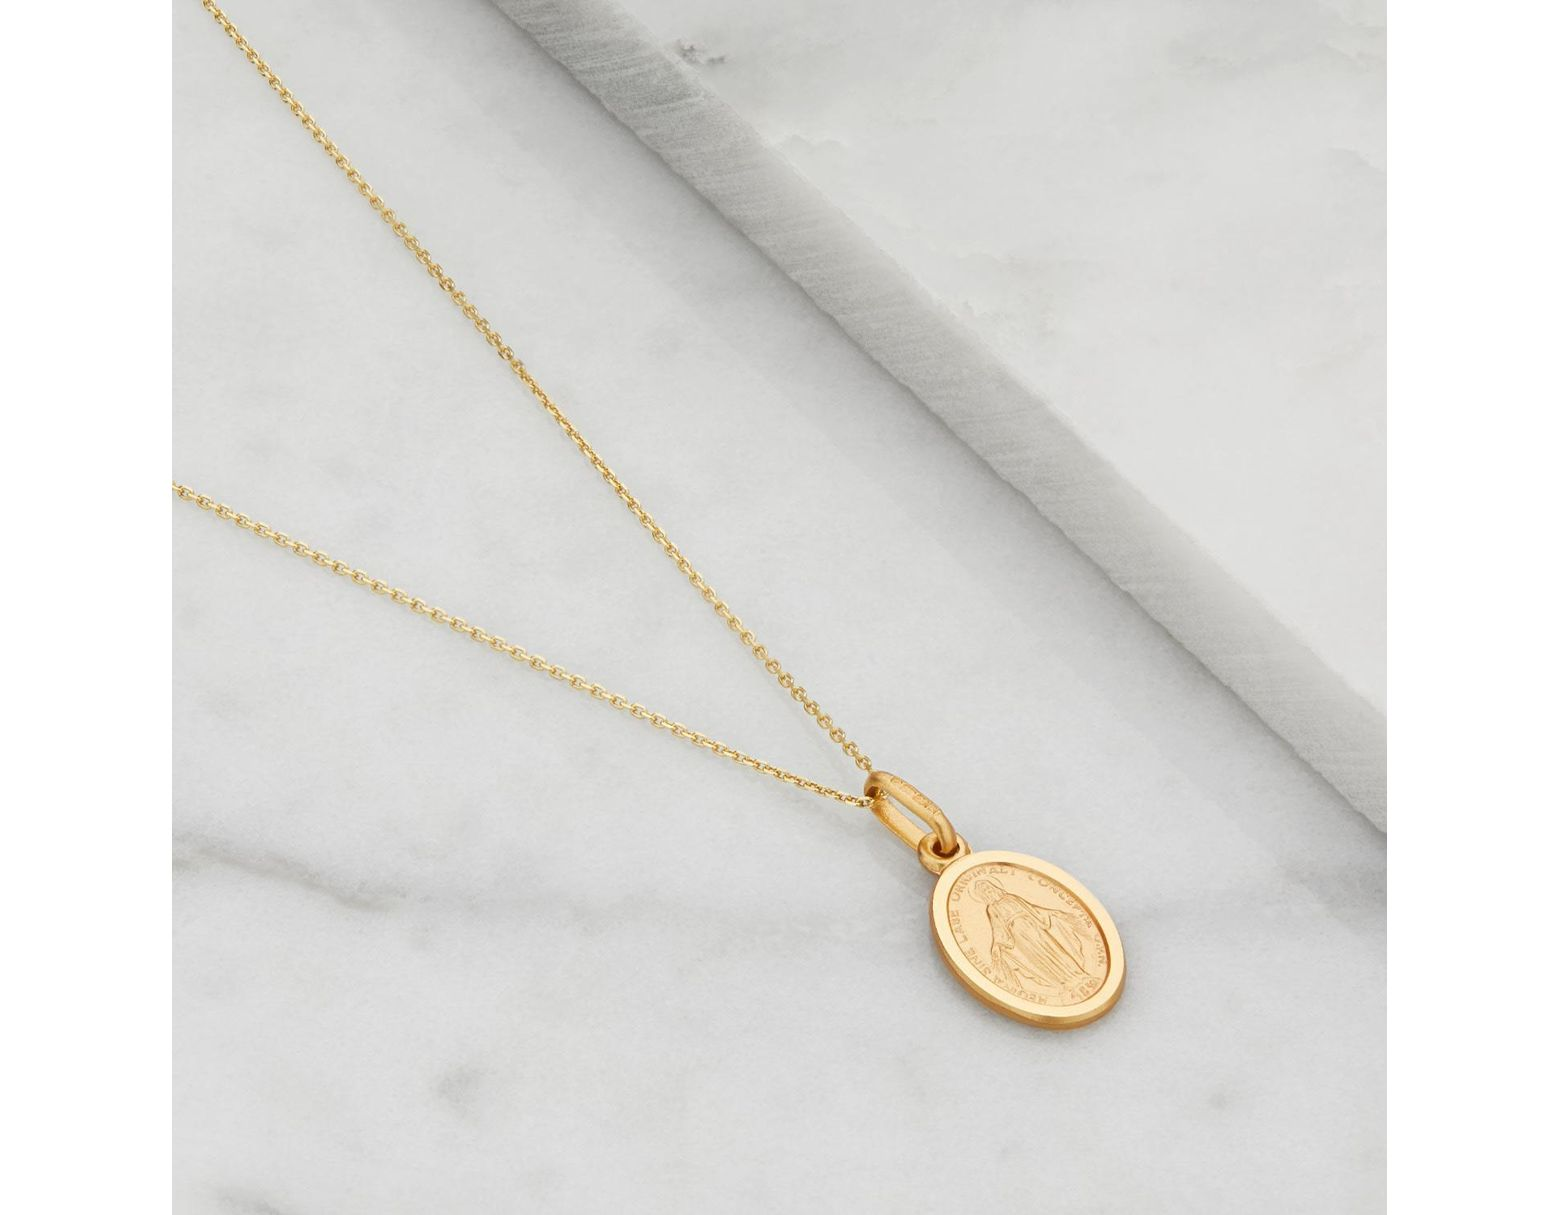 f2a9f08bff3c6 Women's Metallic Small Solid Gold Oval Virgin Mary Necklace